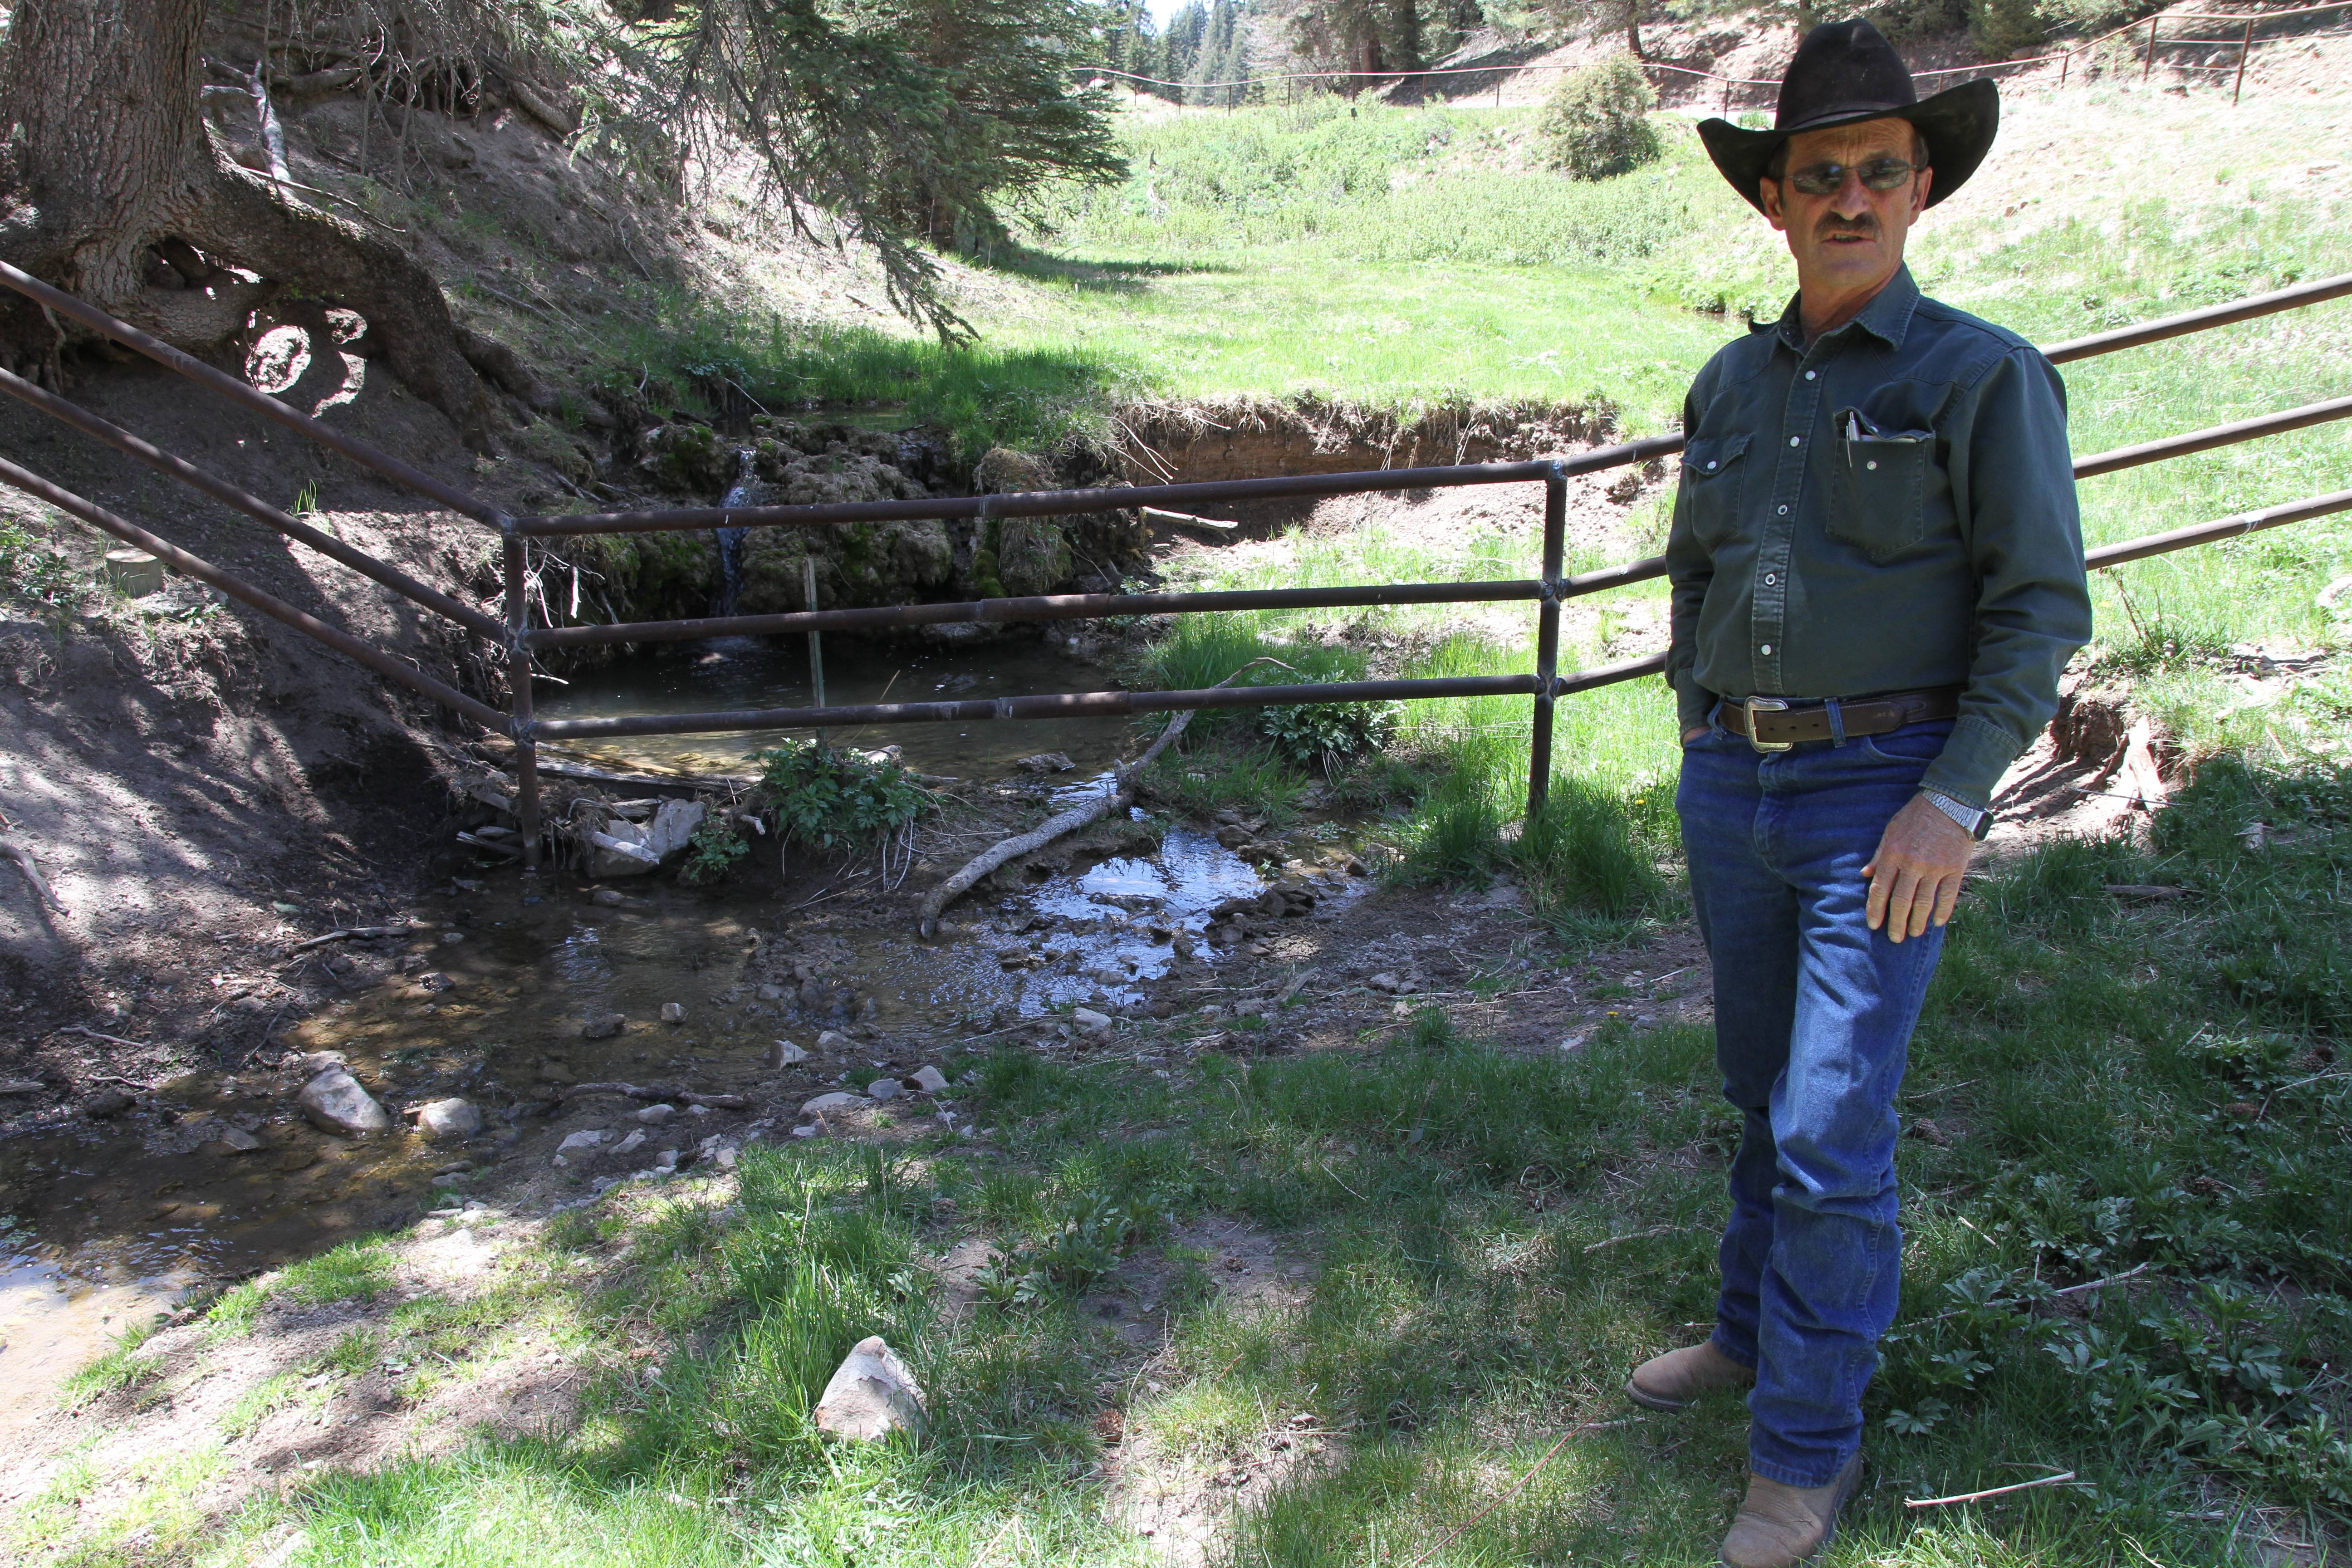 Otero cattle rancher association president Gary Stone talks Thursday near a fence at Weed, New Mexico, The Otero County Cattleman's Association is pitted against the National Forest Service over the fence intended to protect wildlife.